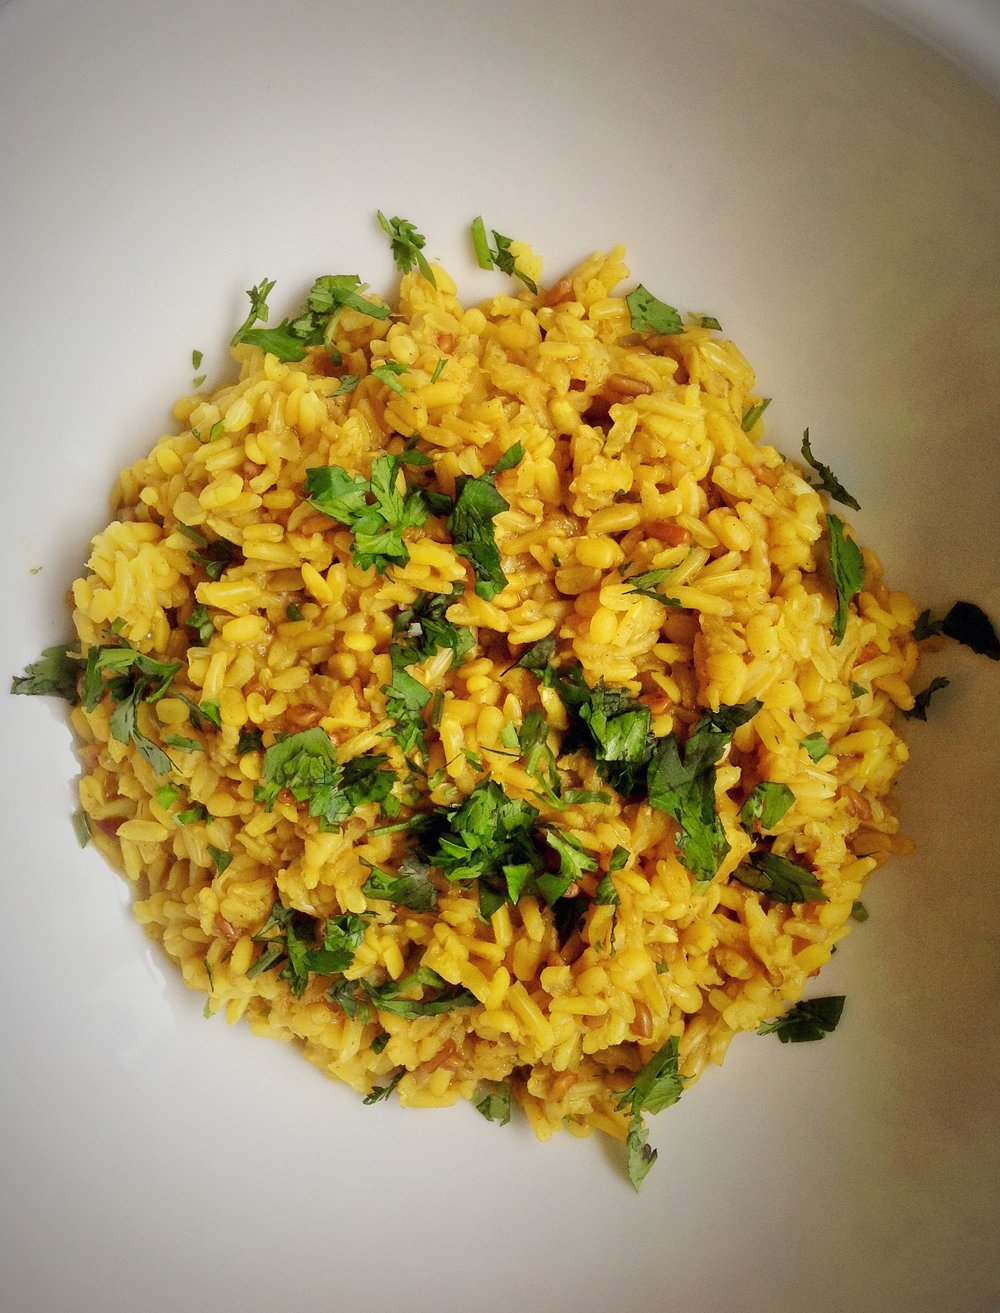 Khichda - Indian Curried Mung Beans and Rice - Healthy, Plant-Based, Oil-Free, Gluten-Free, Vegan Protein